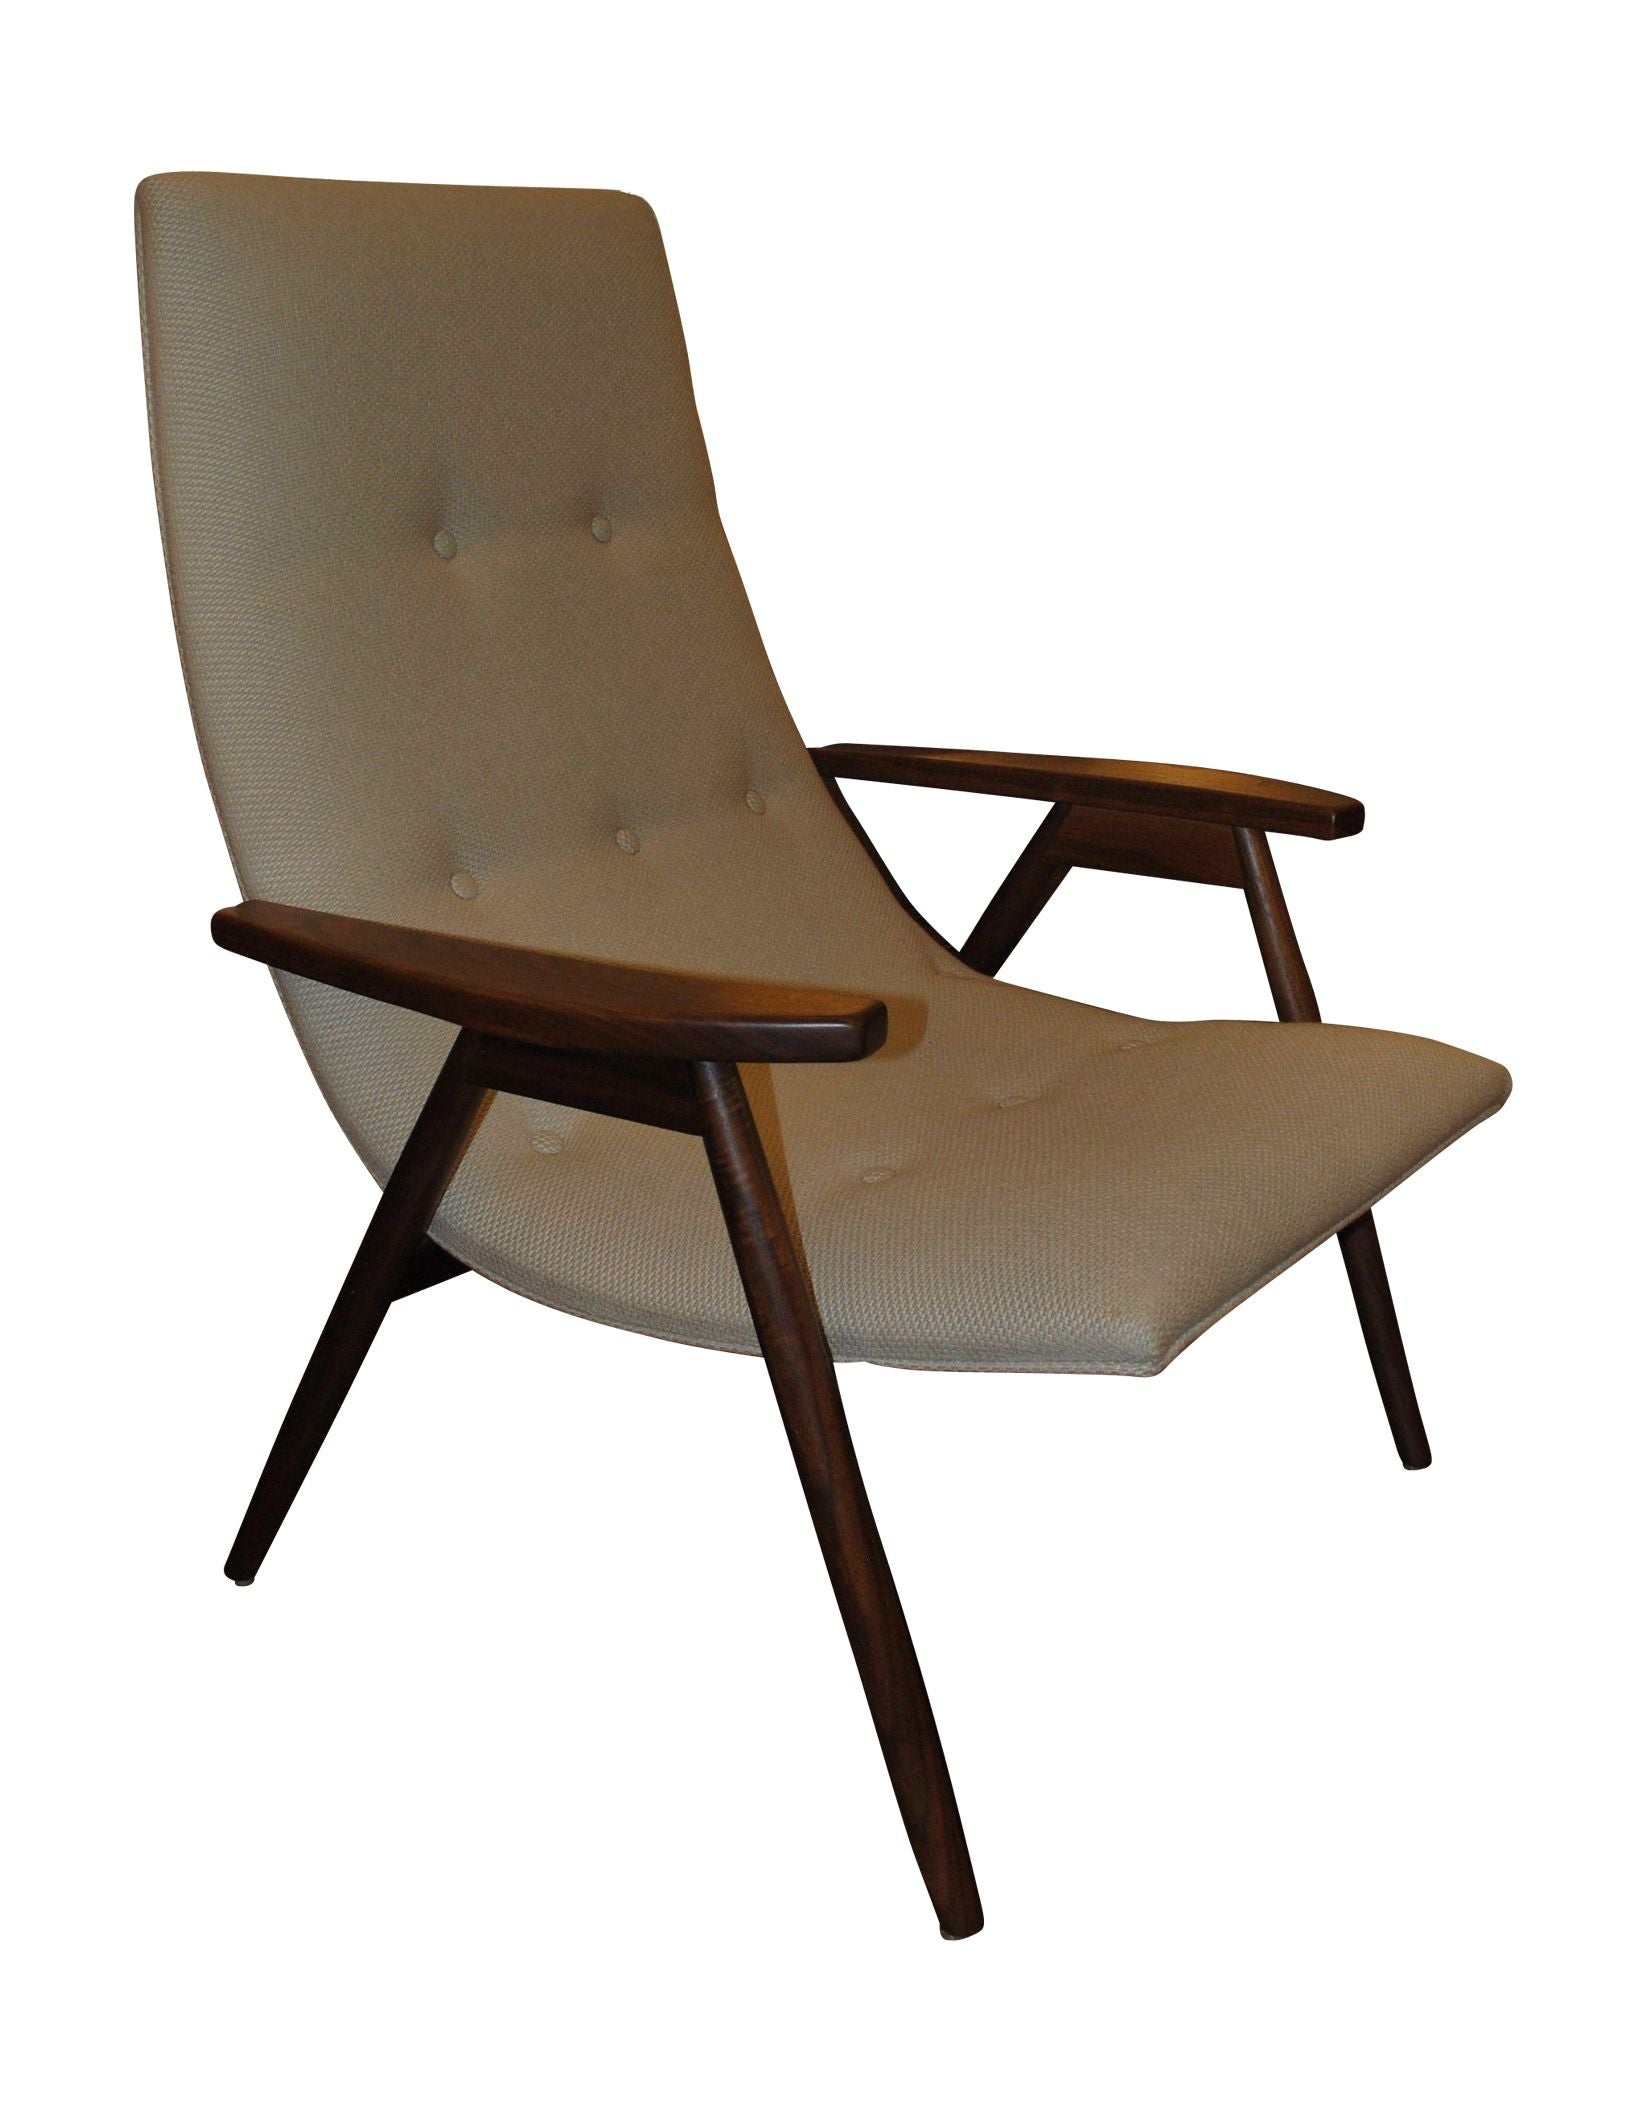 Superb Alan Gould Eggshell Chair For Thayer Coggin   Image 1 Of 3